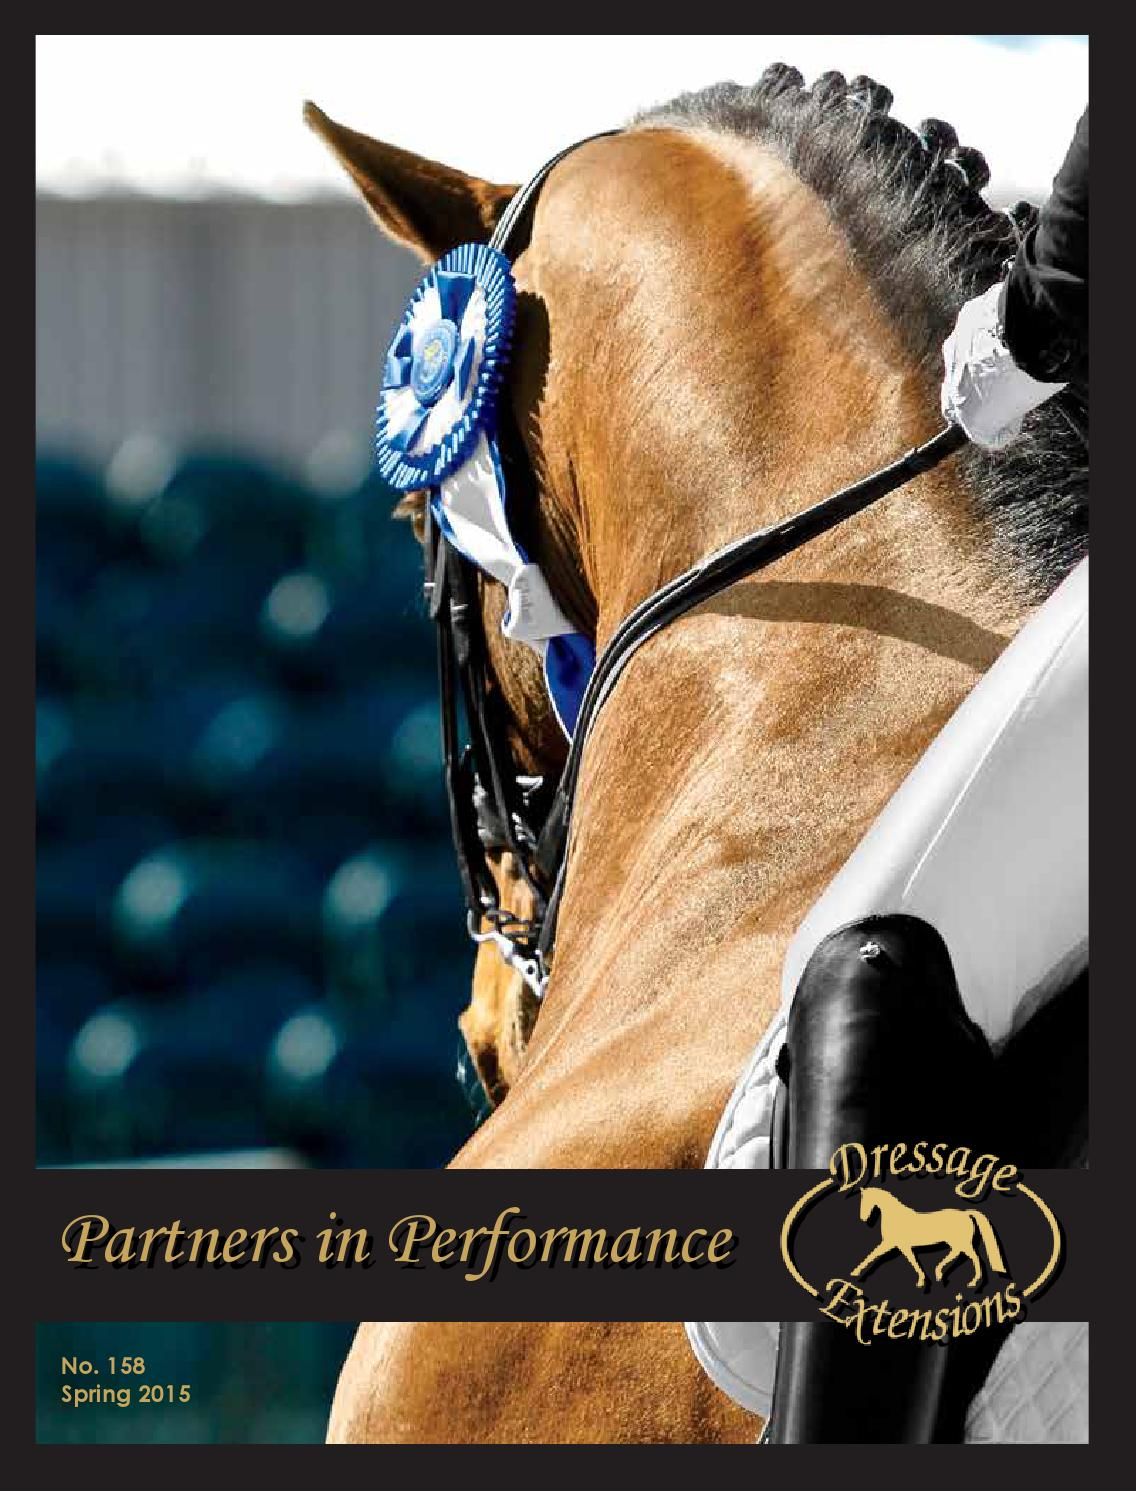 Dressage Extensions Catalog 158 by Dressage Extensions issuu